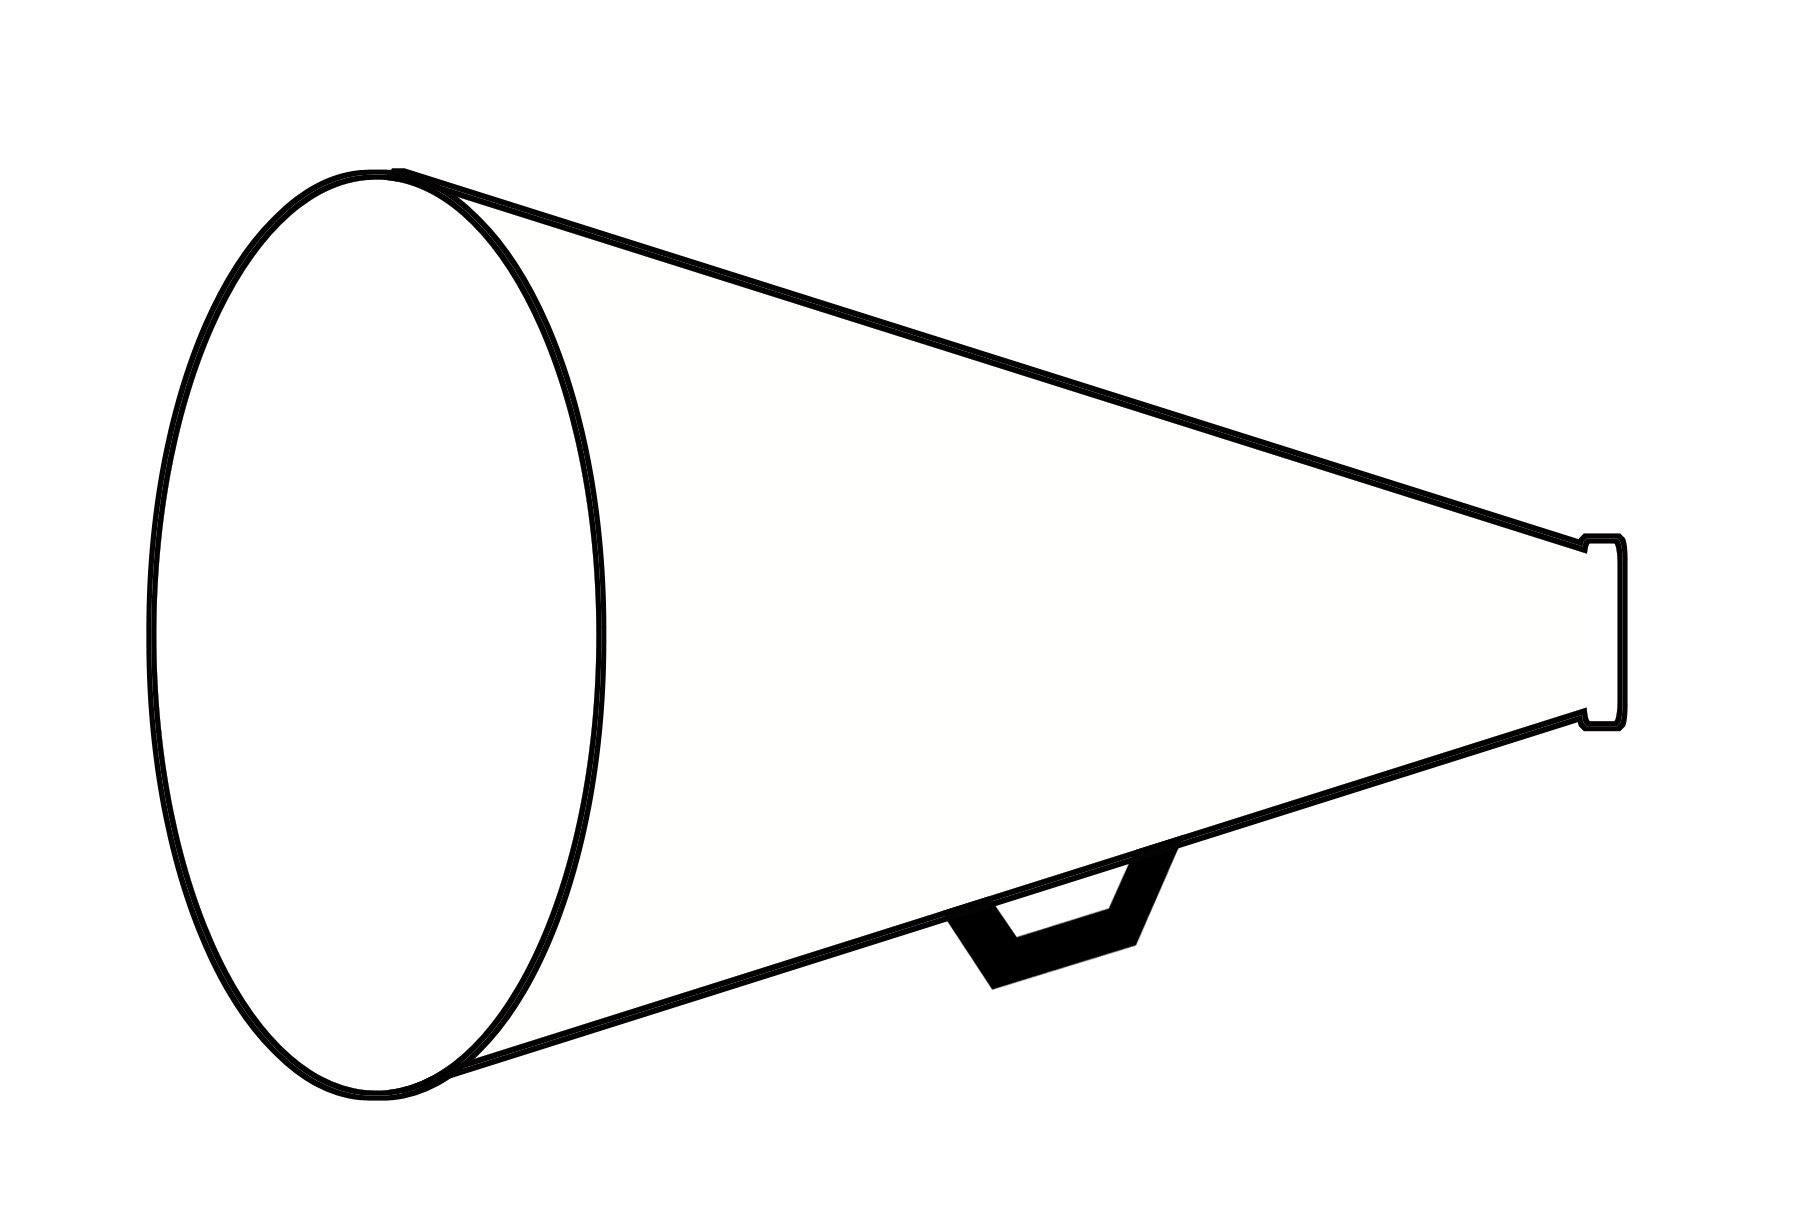 Black and white wikiclipart. Free cheer megaphone clipart